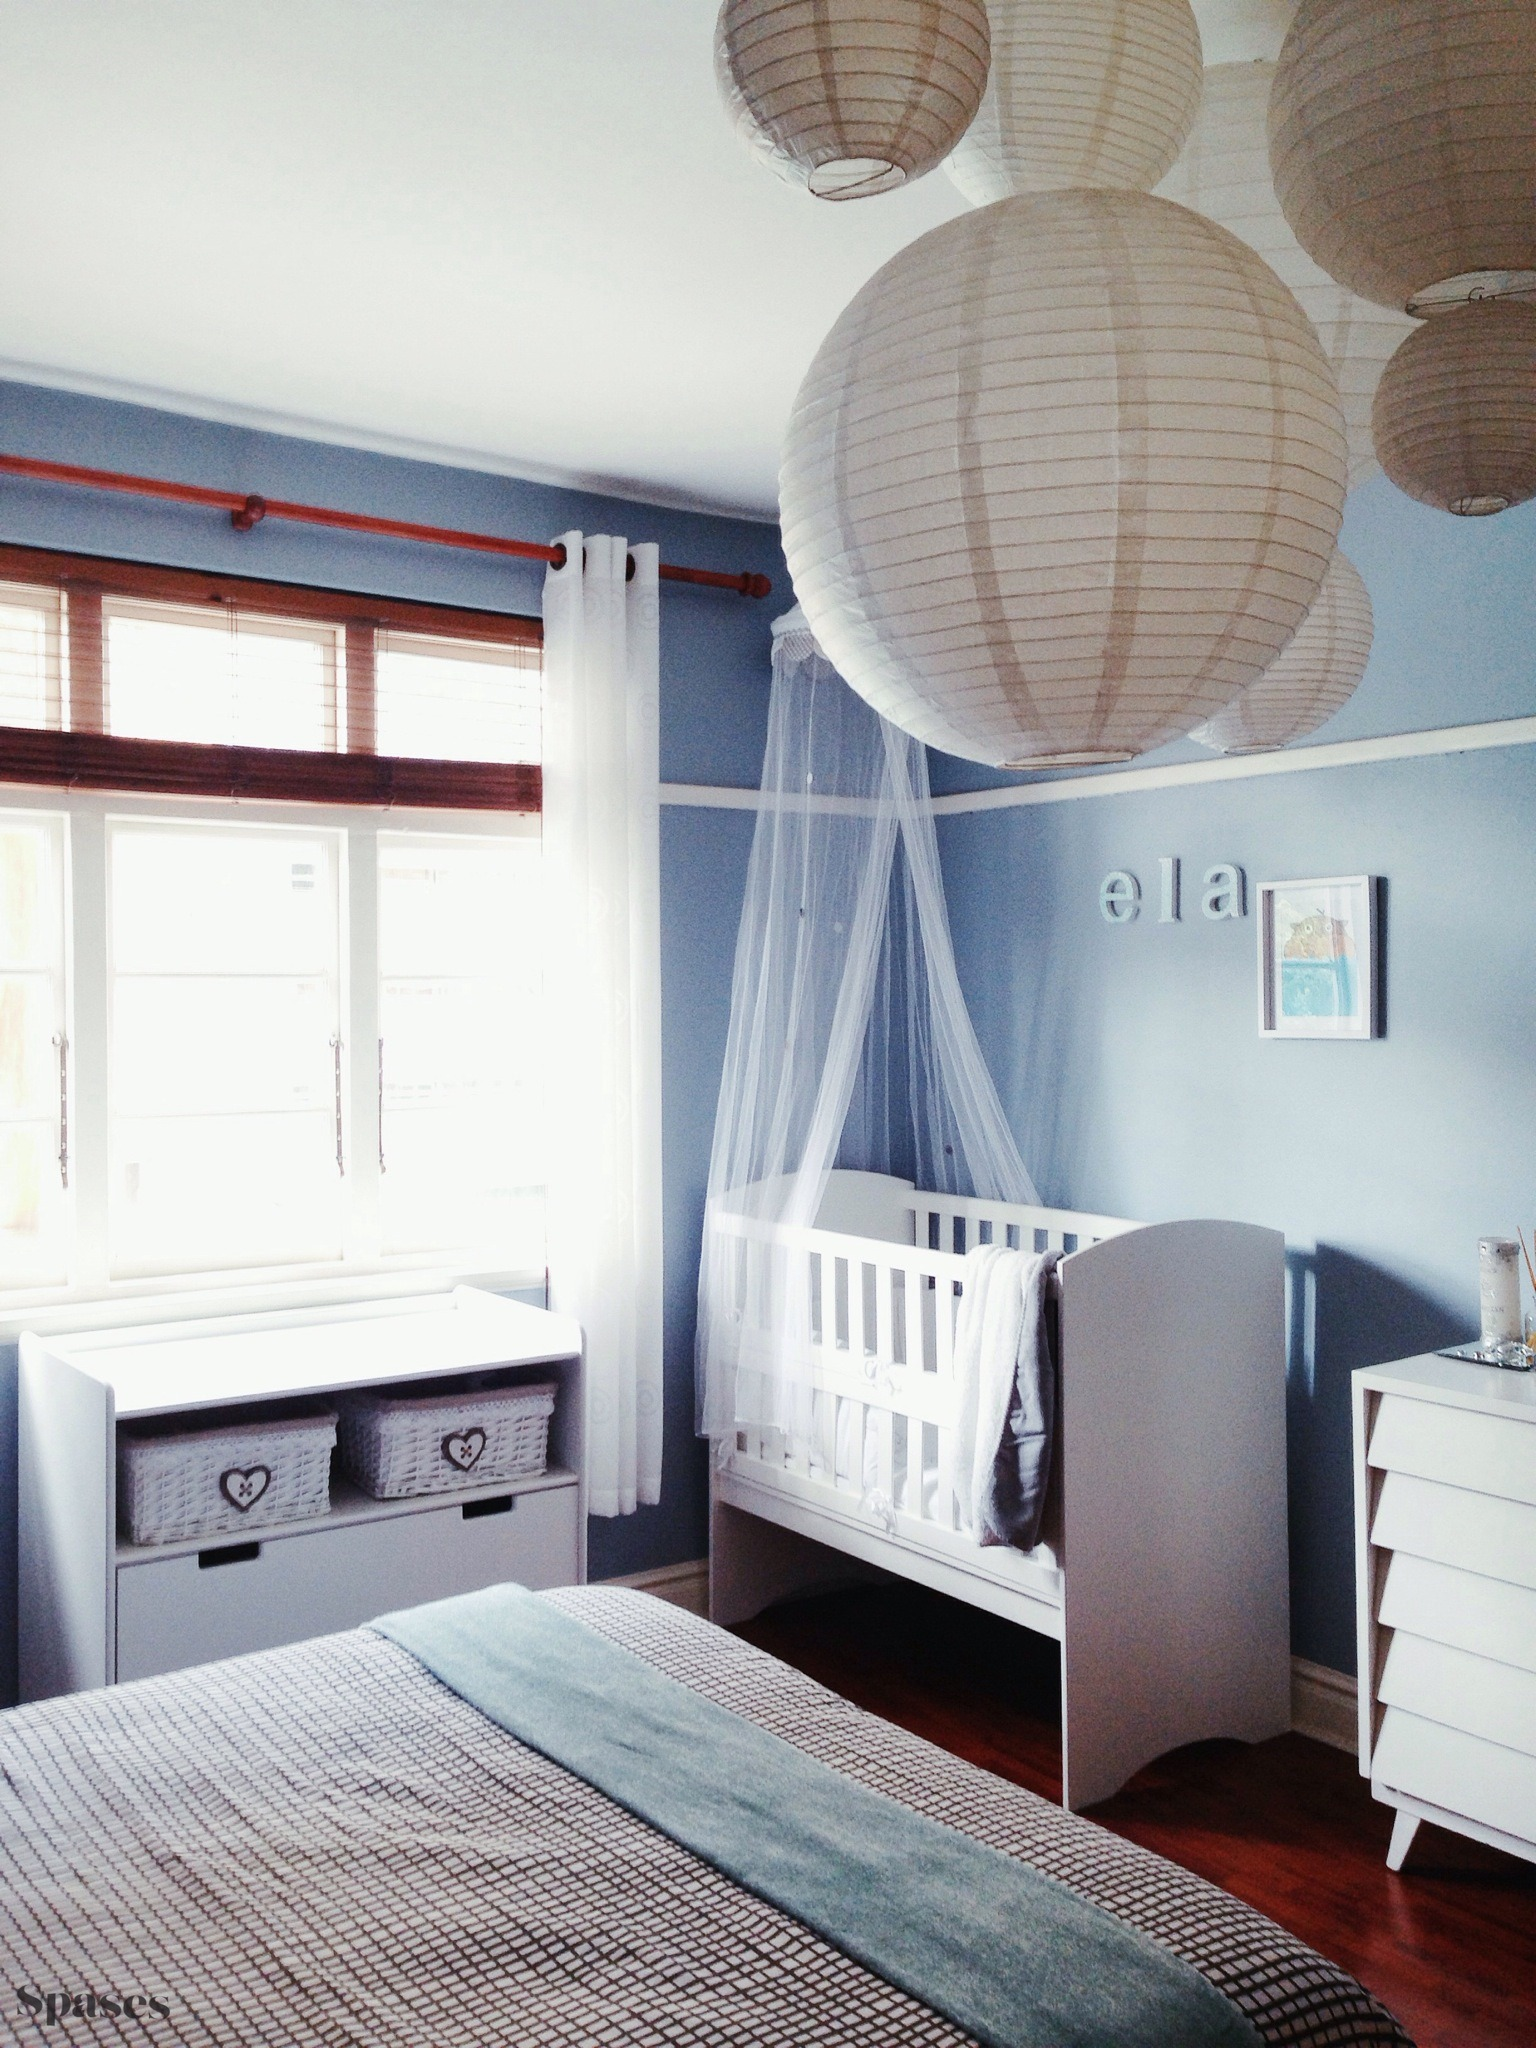 All done spases Master bedroom with nursery ideas